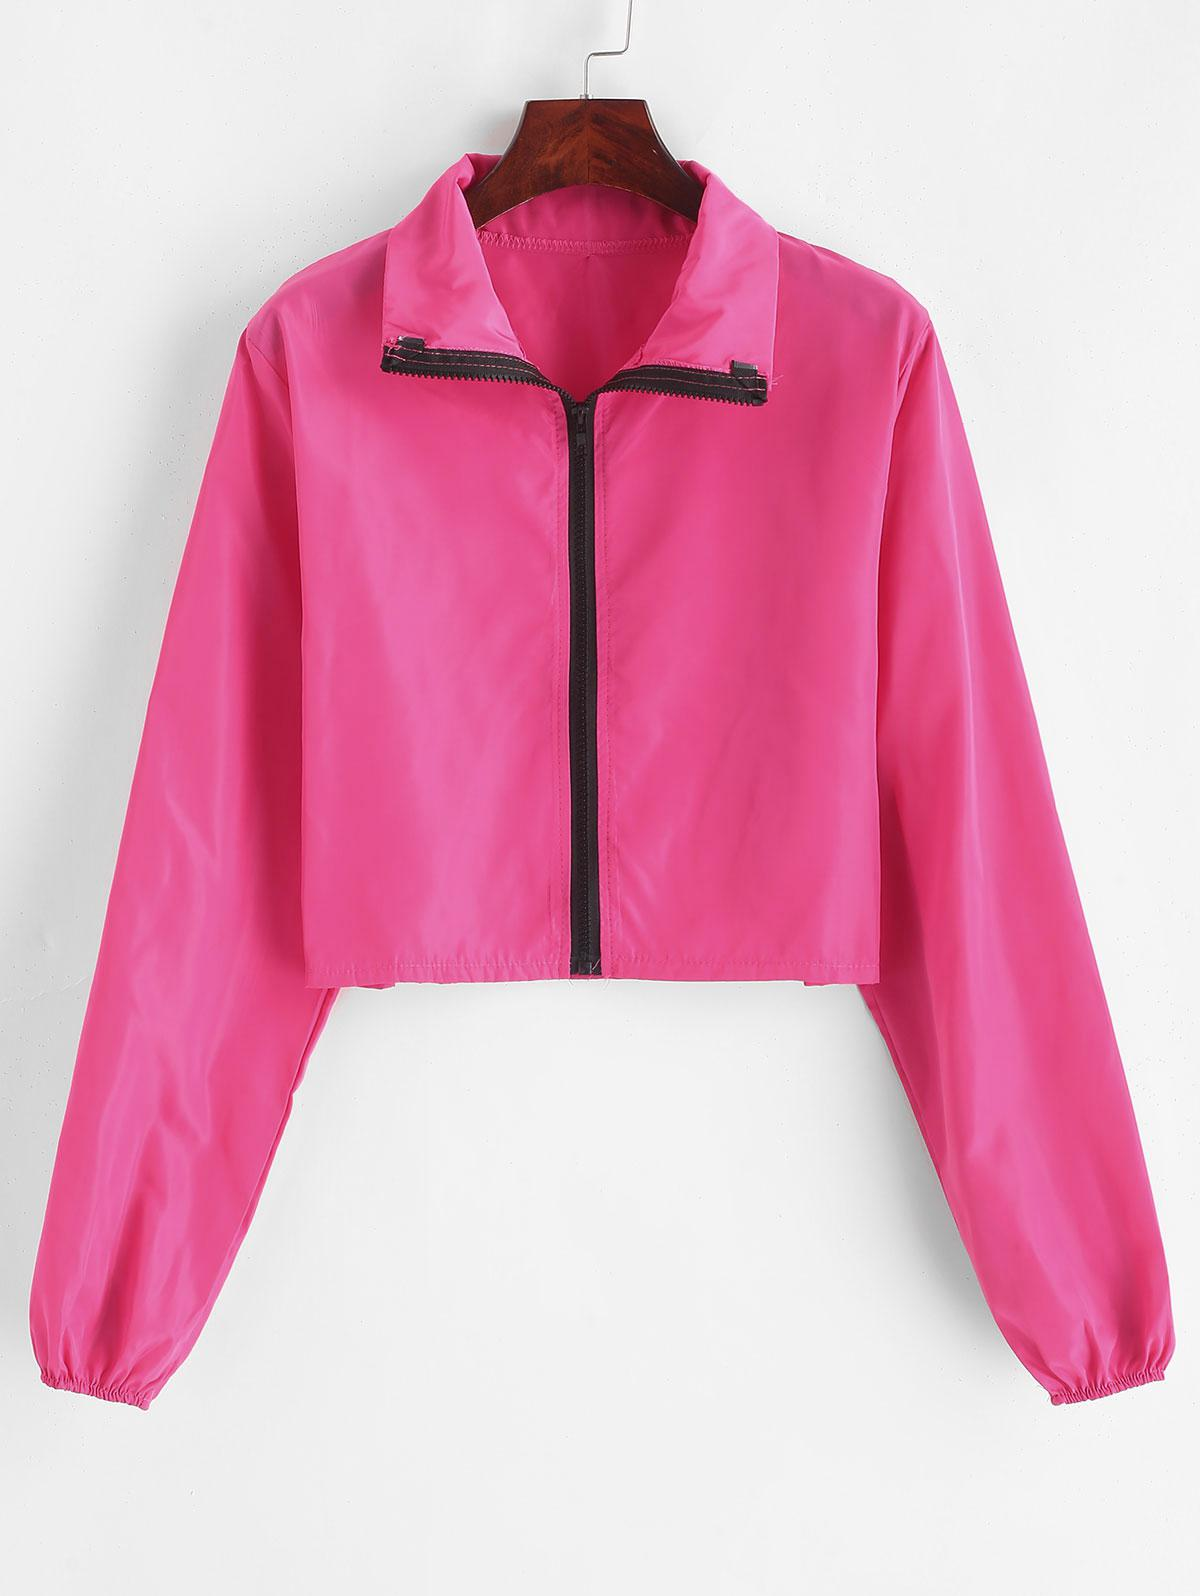 Cropped Zip Up Windbreaker Jacket